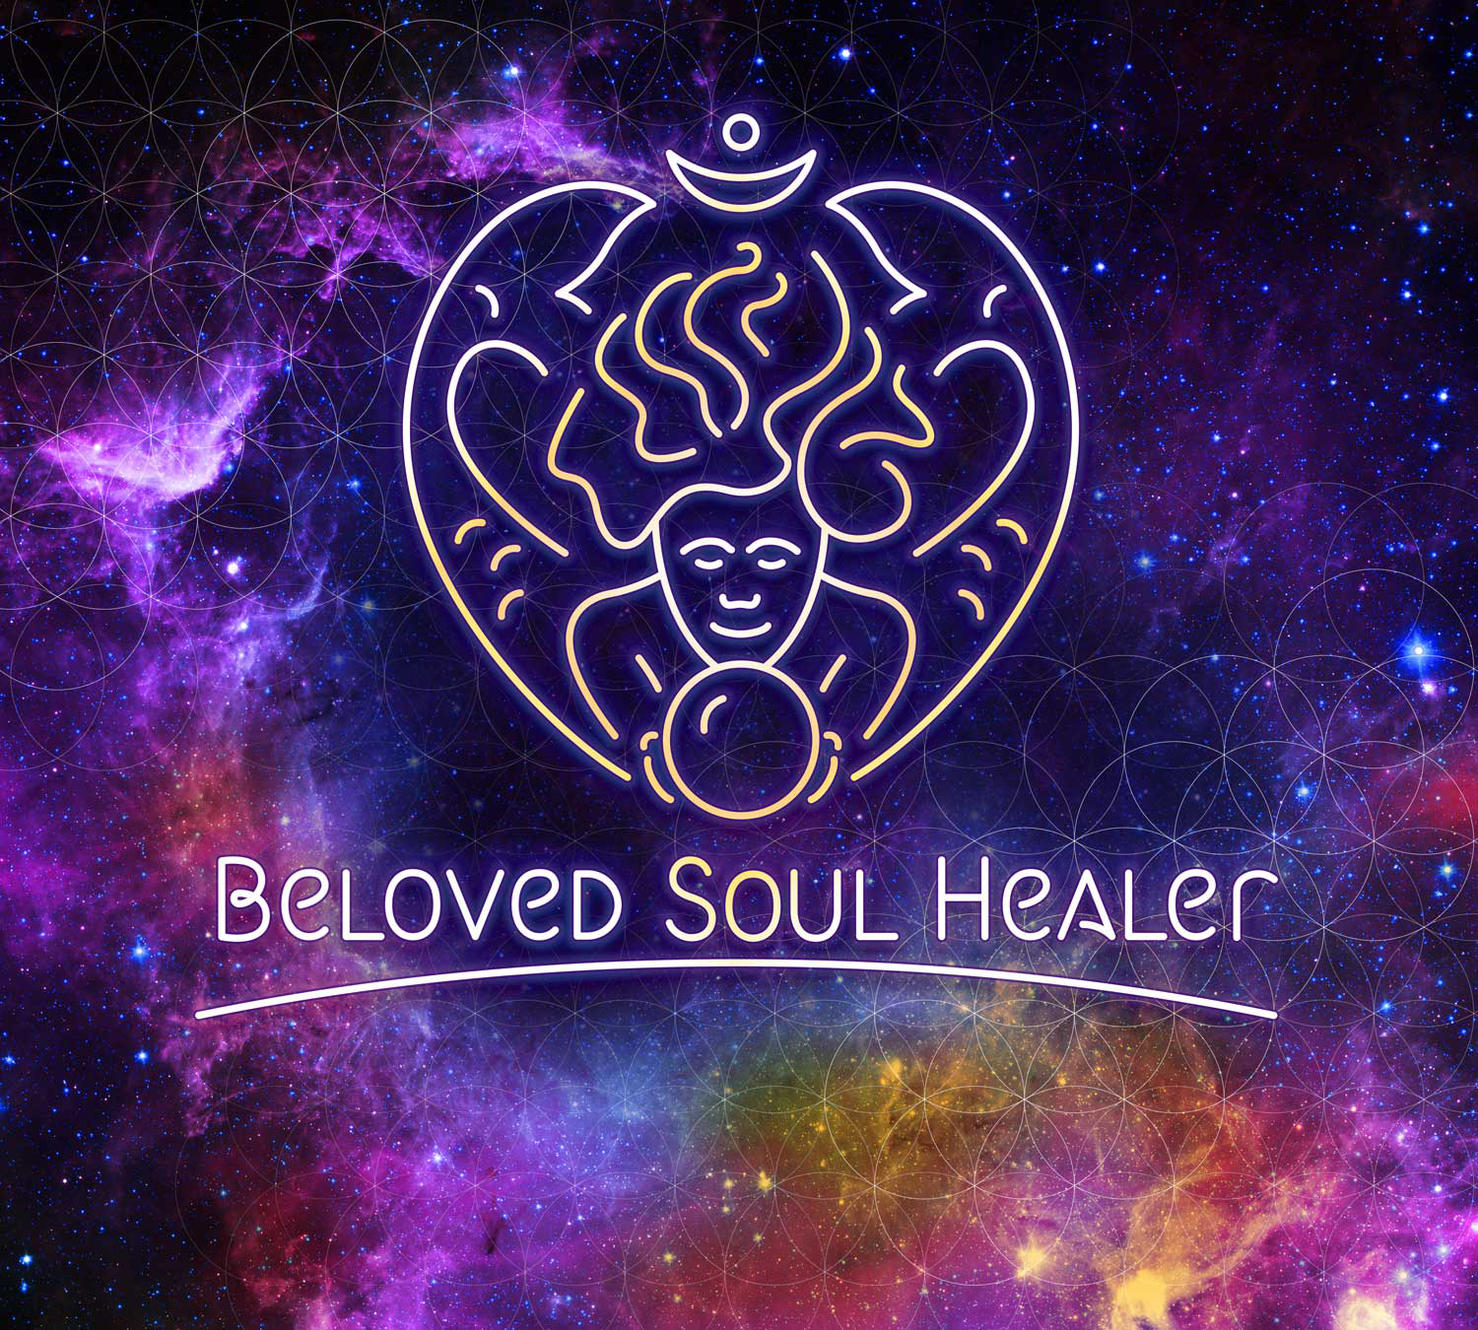 Beloved Soul Healer